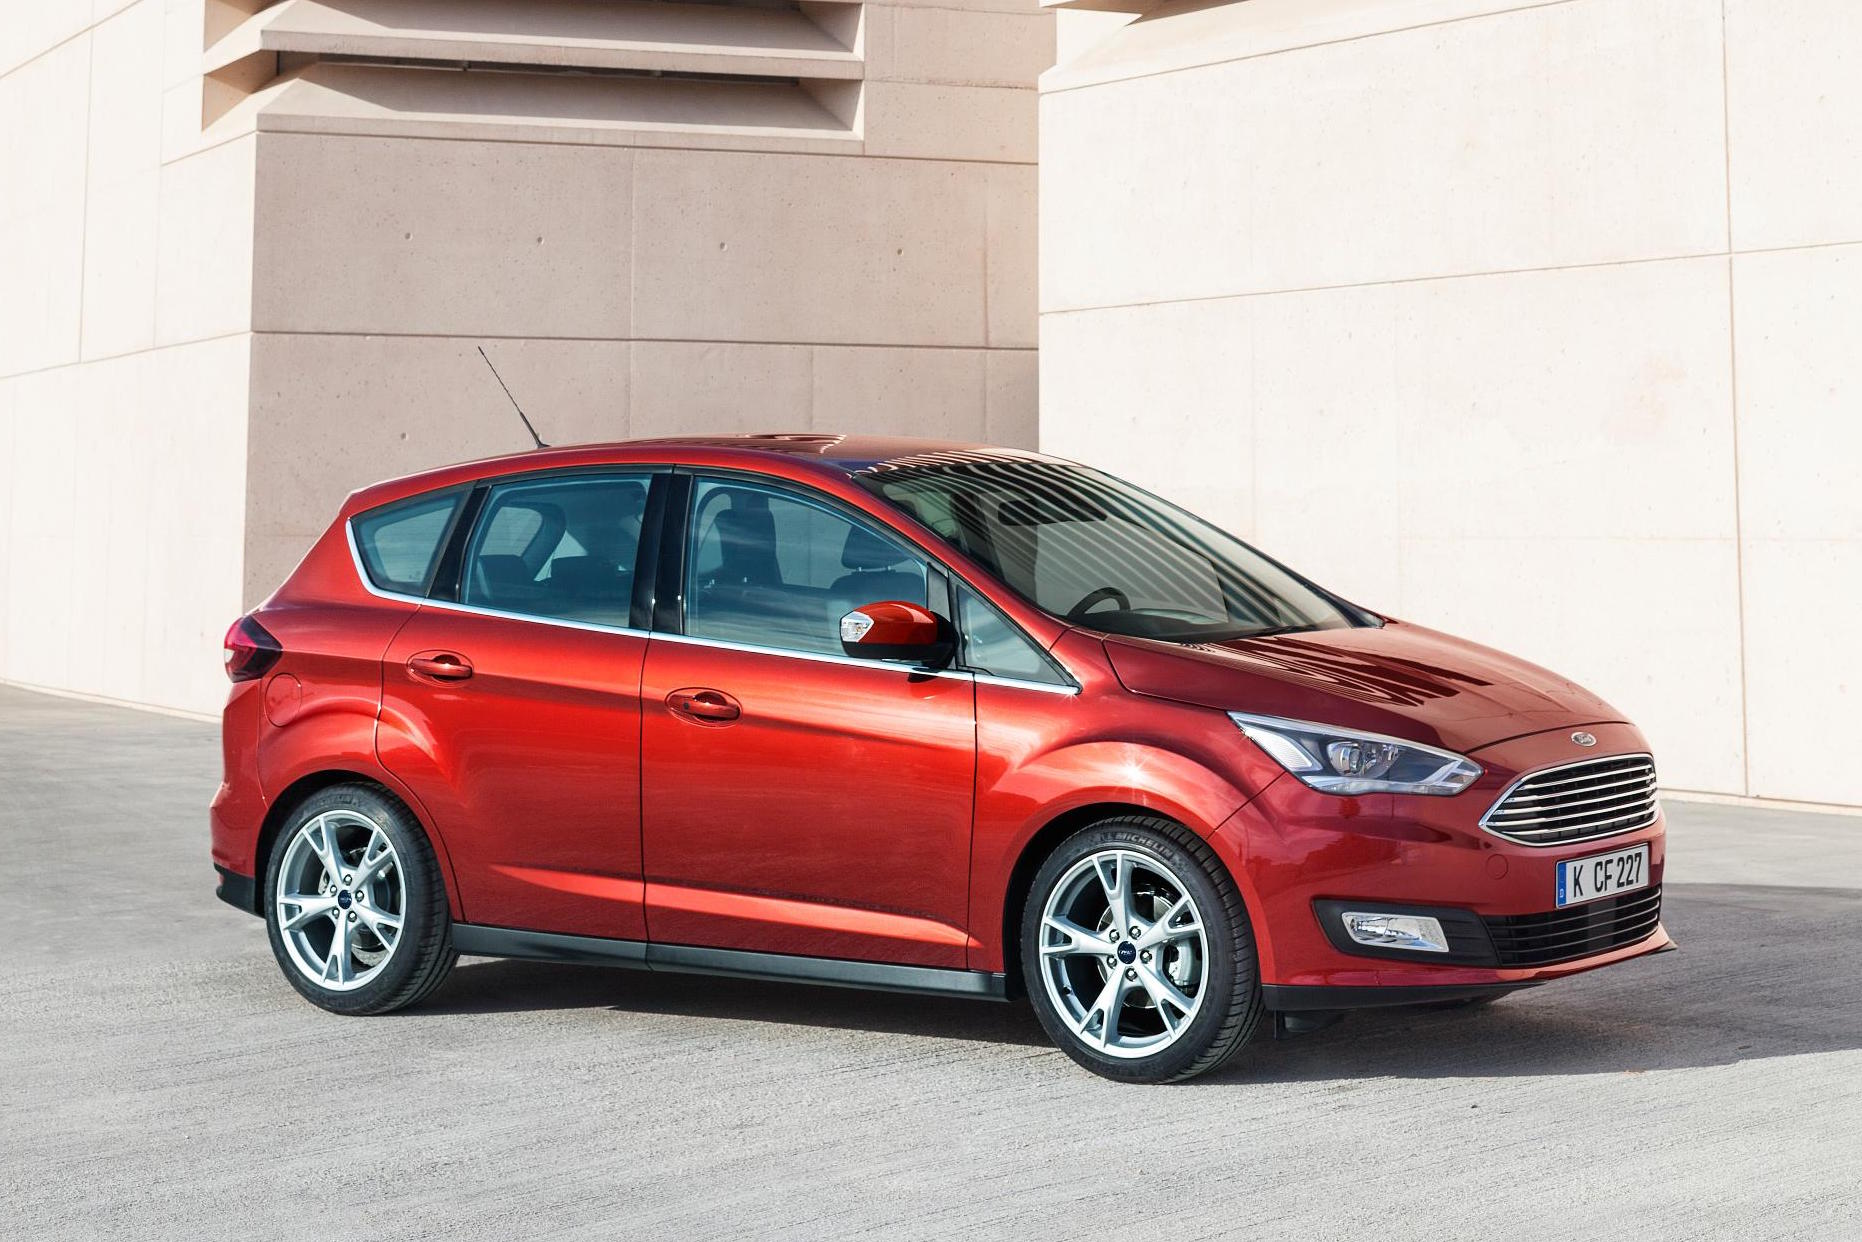 Red Ford C-Max